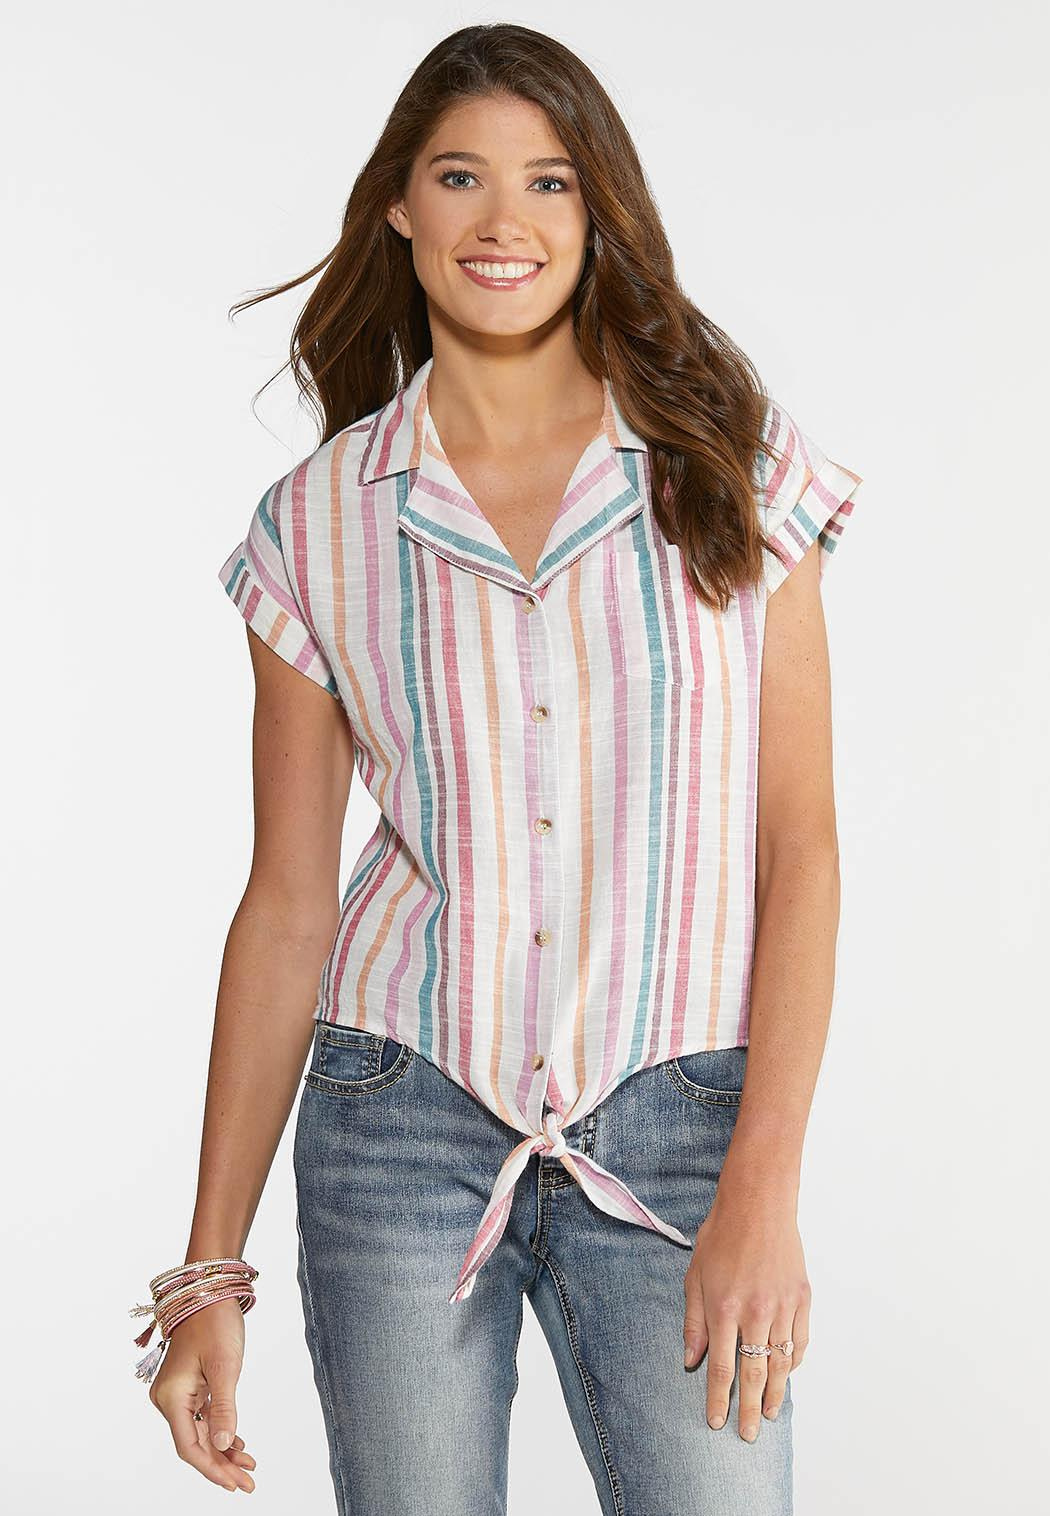 d239b8e3 Women's Plus Size Shirts & Blouses